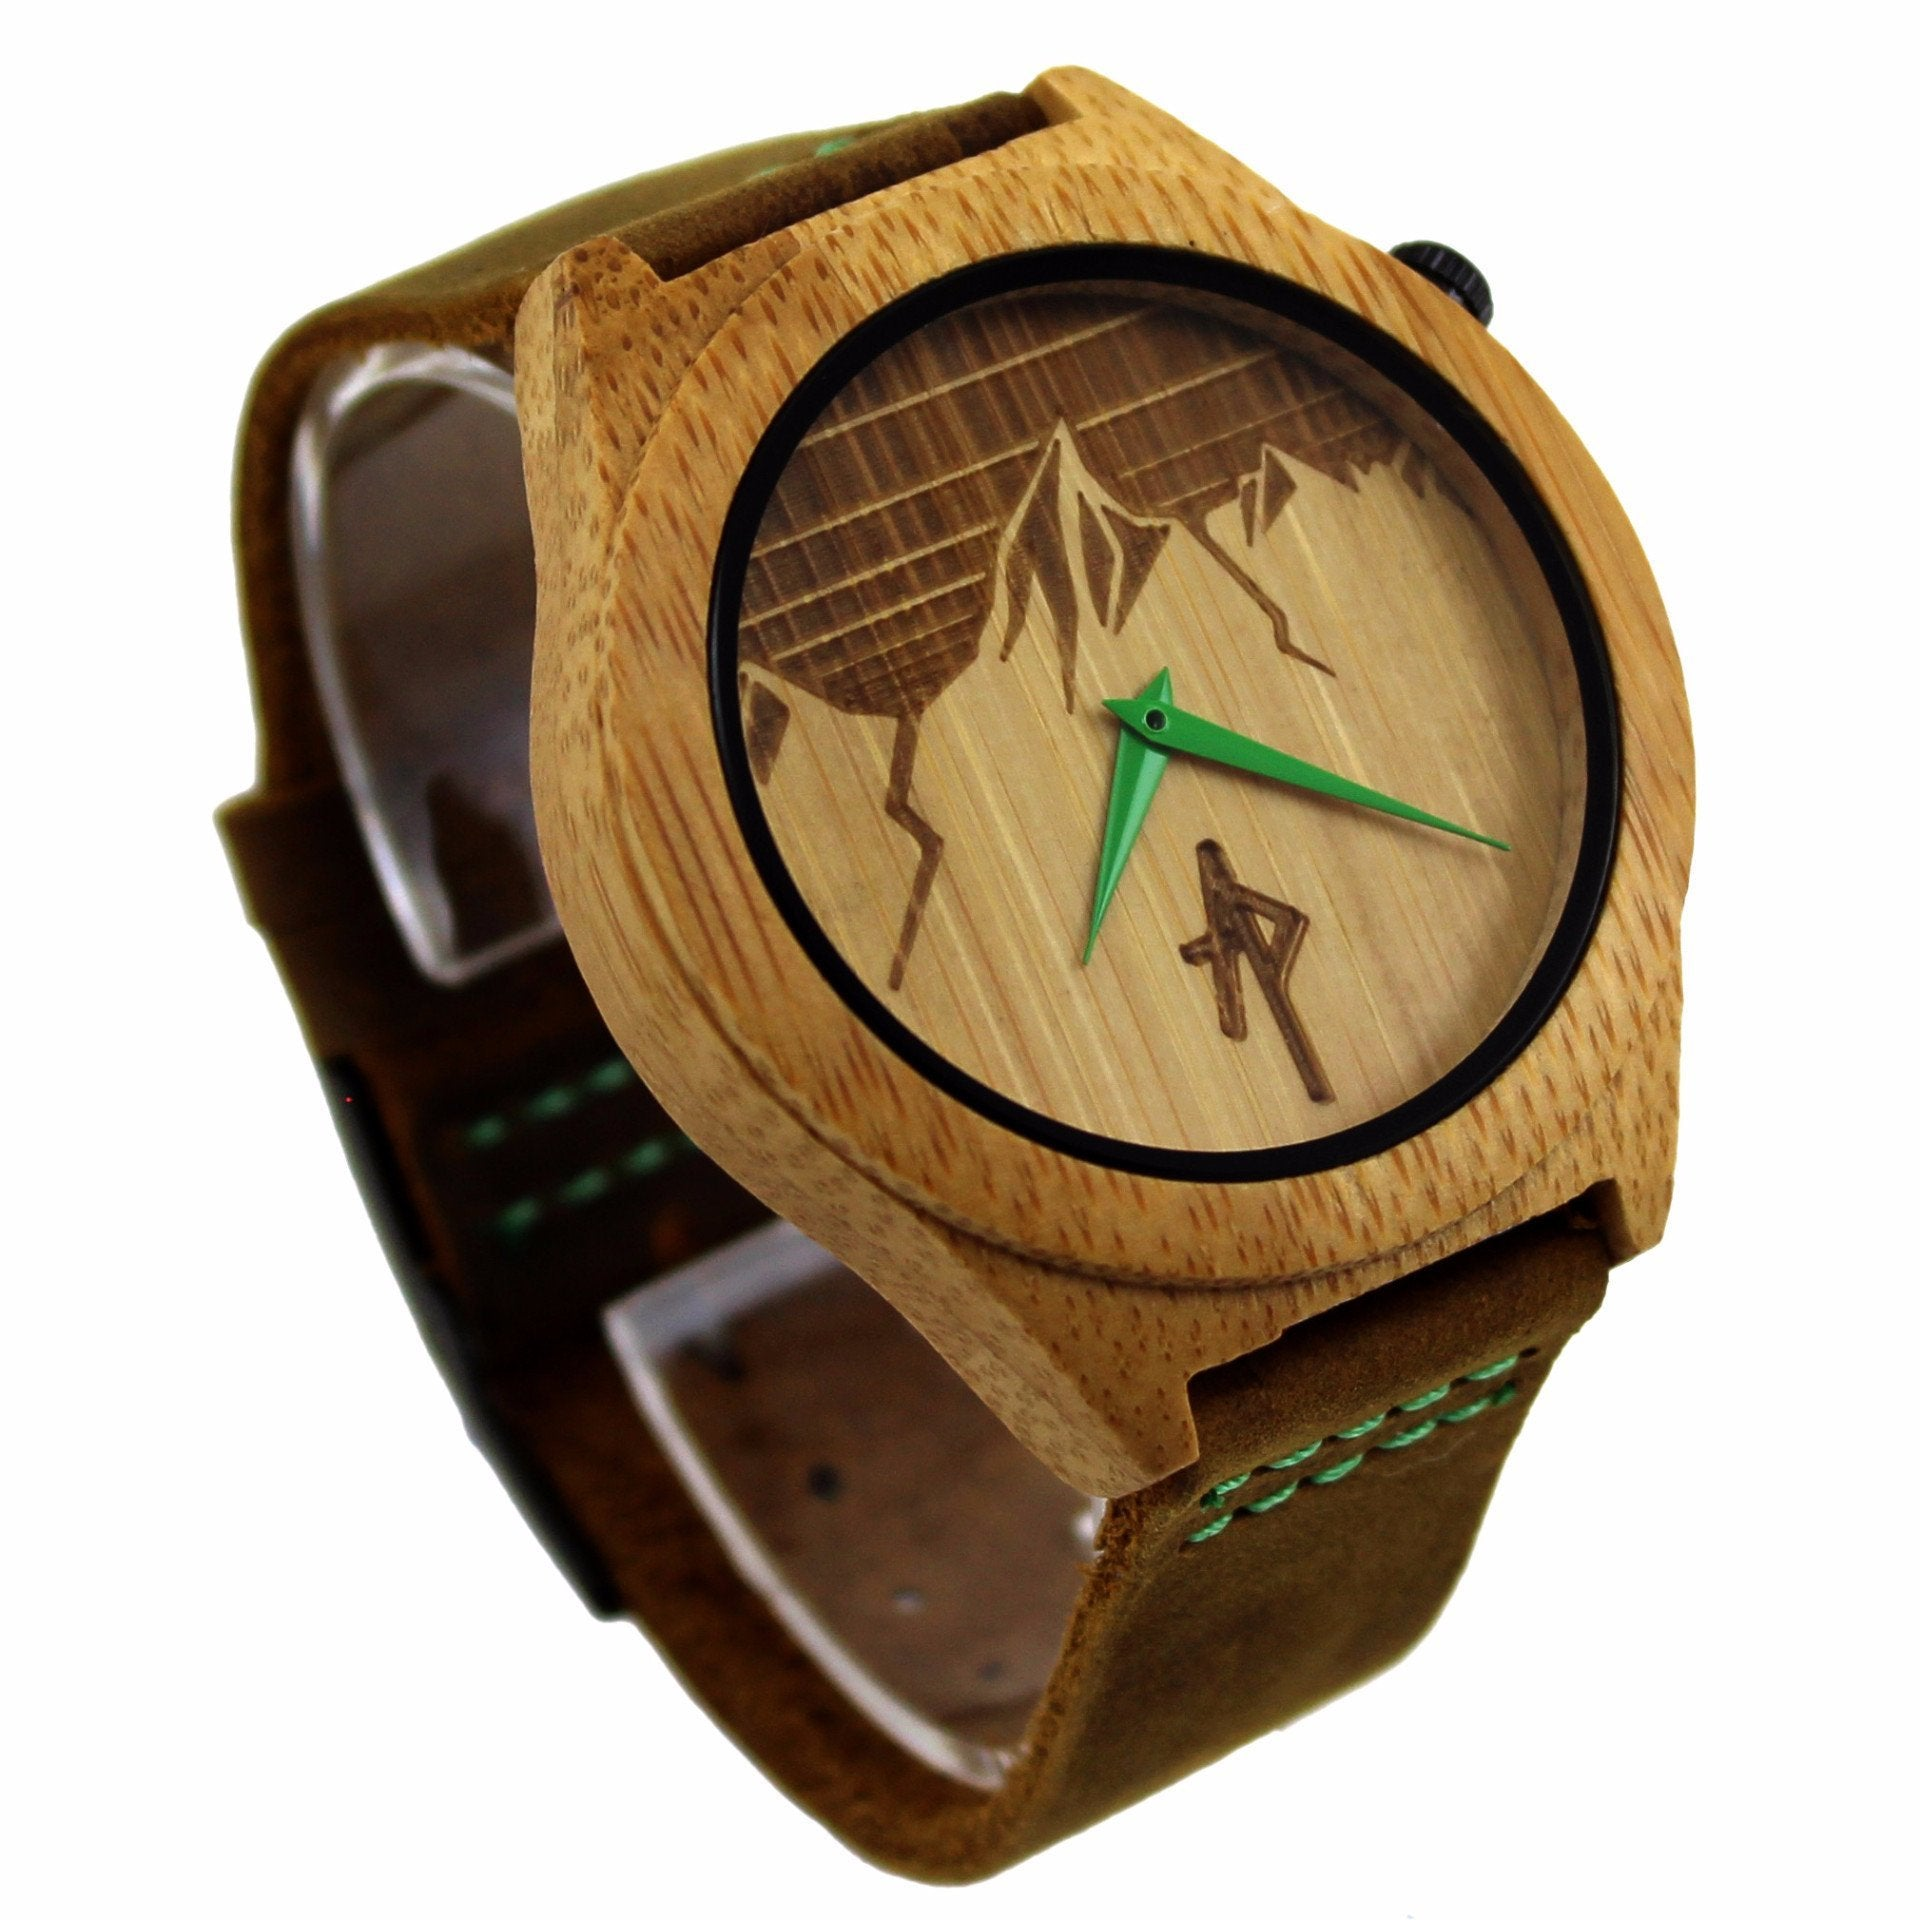 watches women top giftse wristwatch luxury s womens wood product wooden ladies watch bamboo by brand quartz relogio